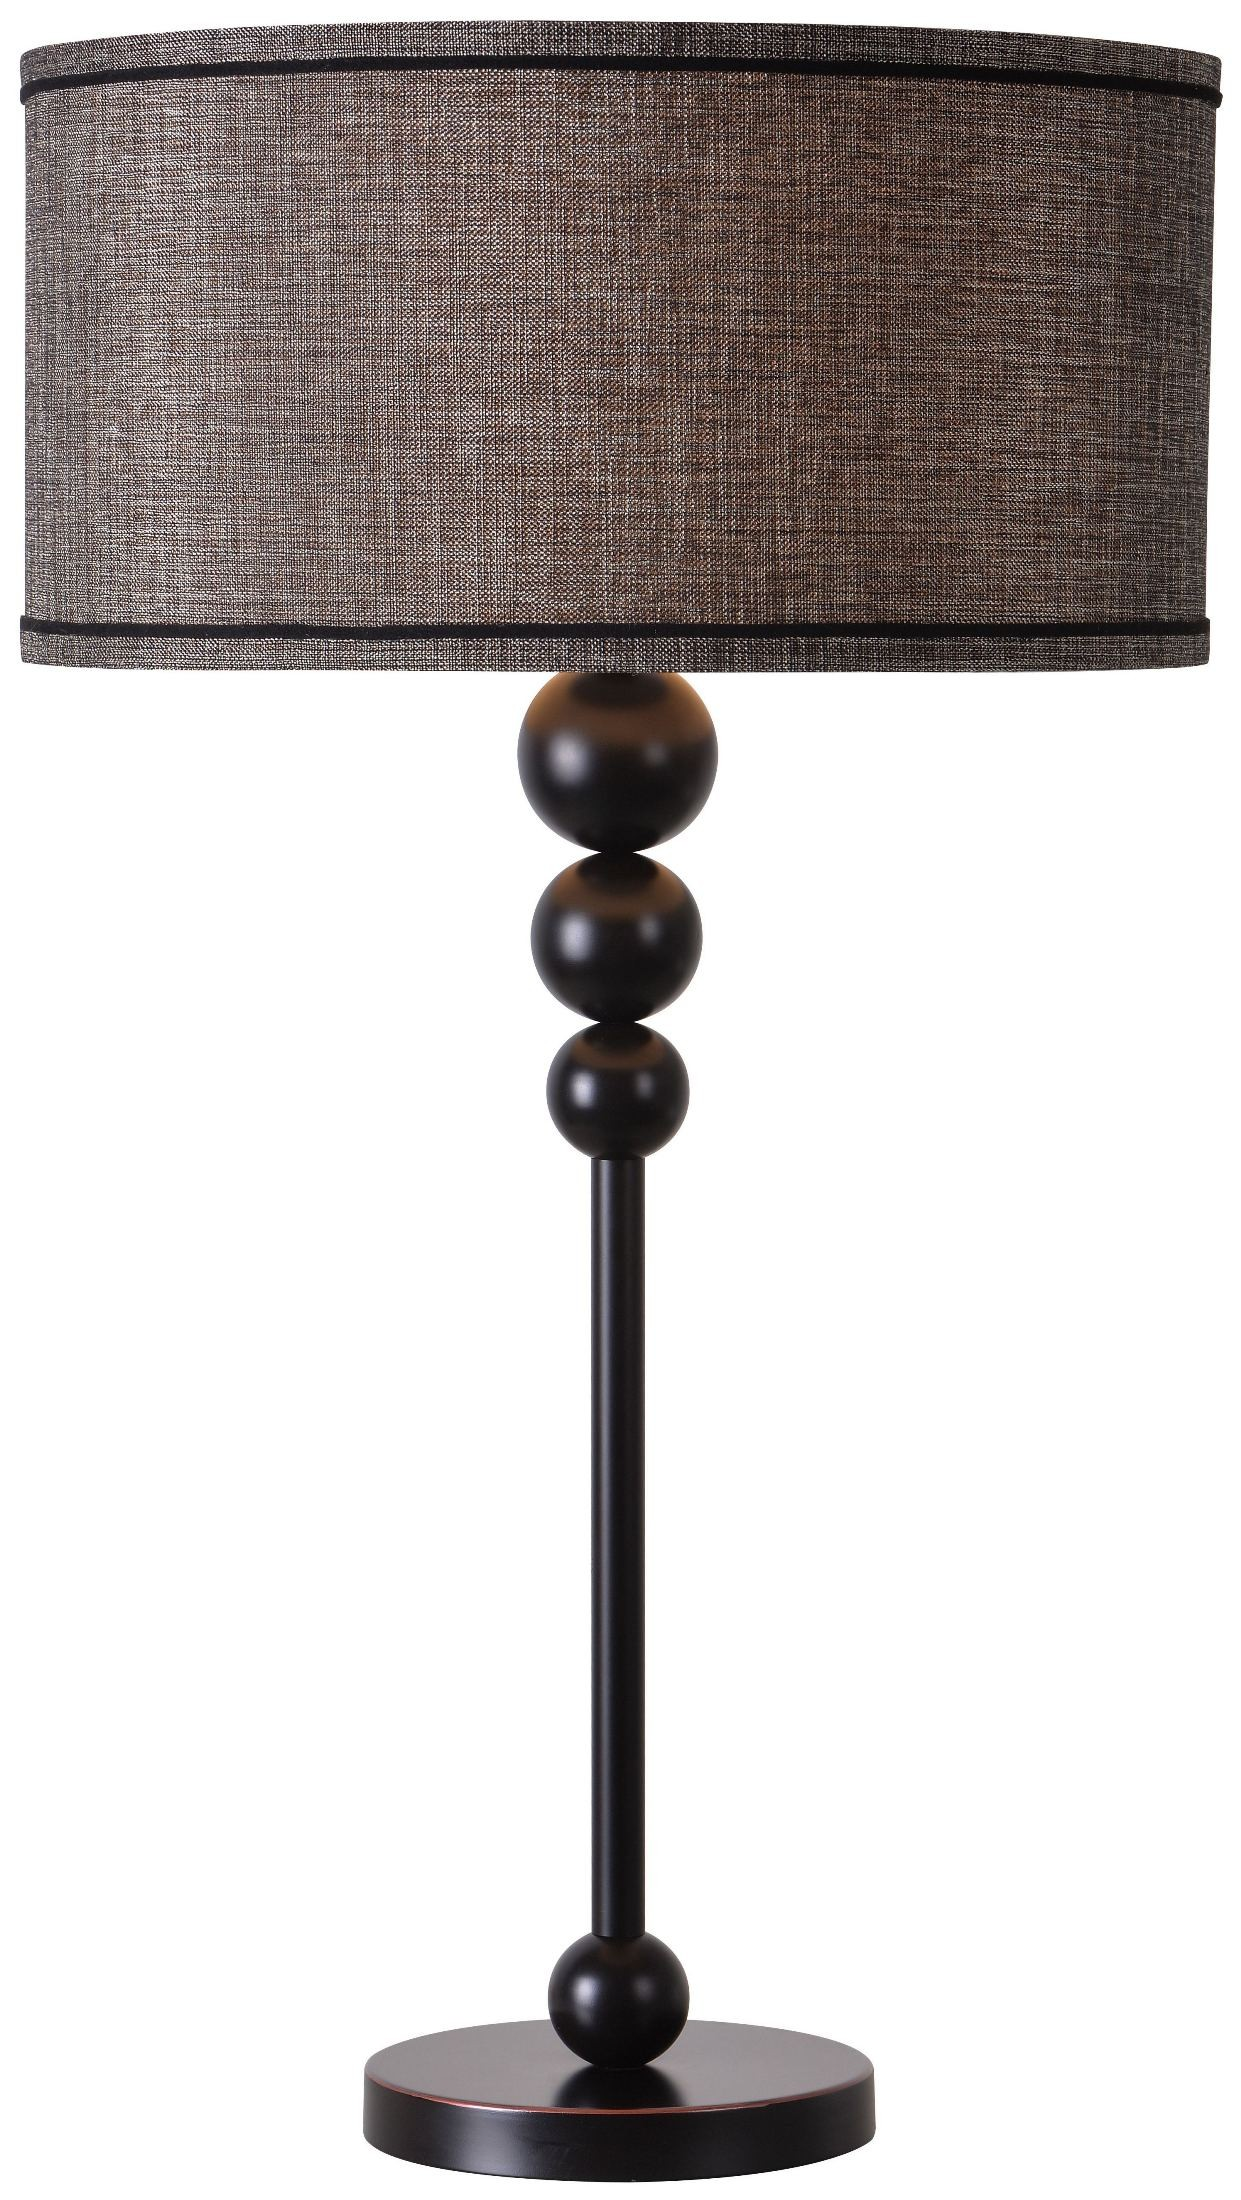 Oil Rubbed Bronze Chairs ~ Margot oil rubbed bronze steel table lamp from kenroy